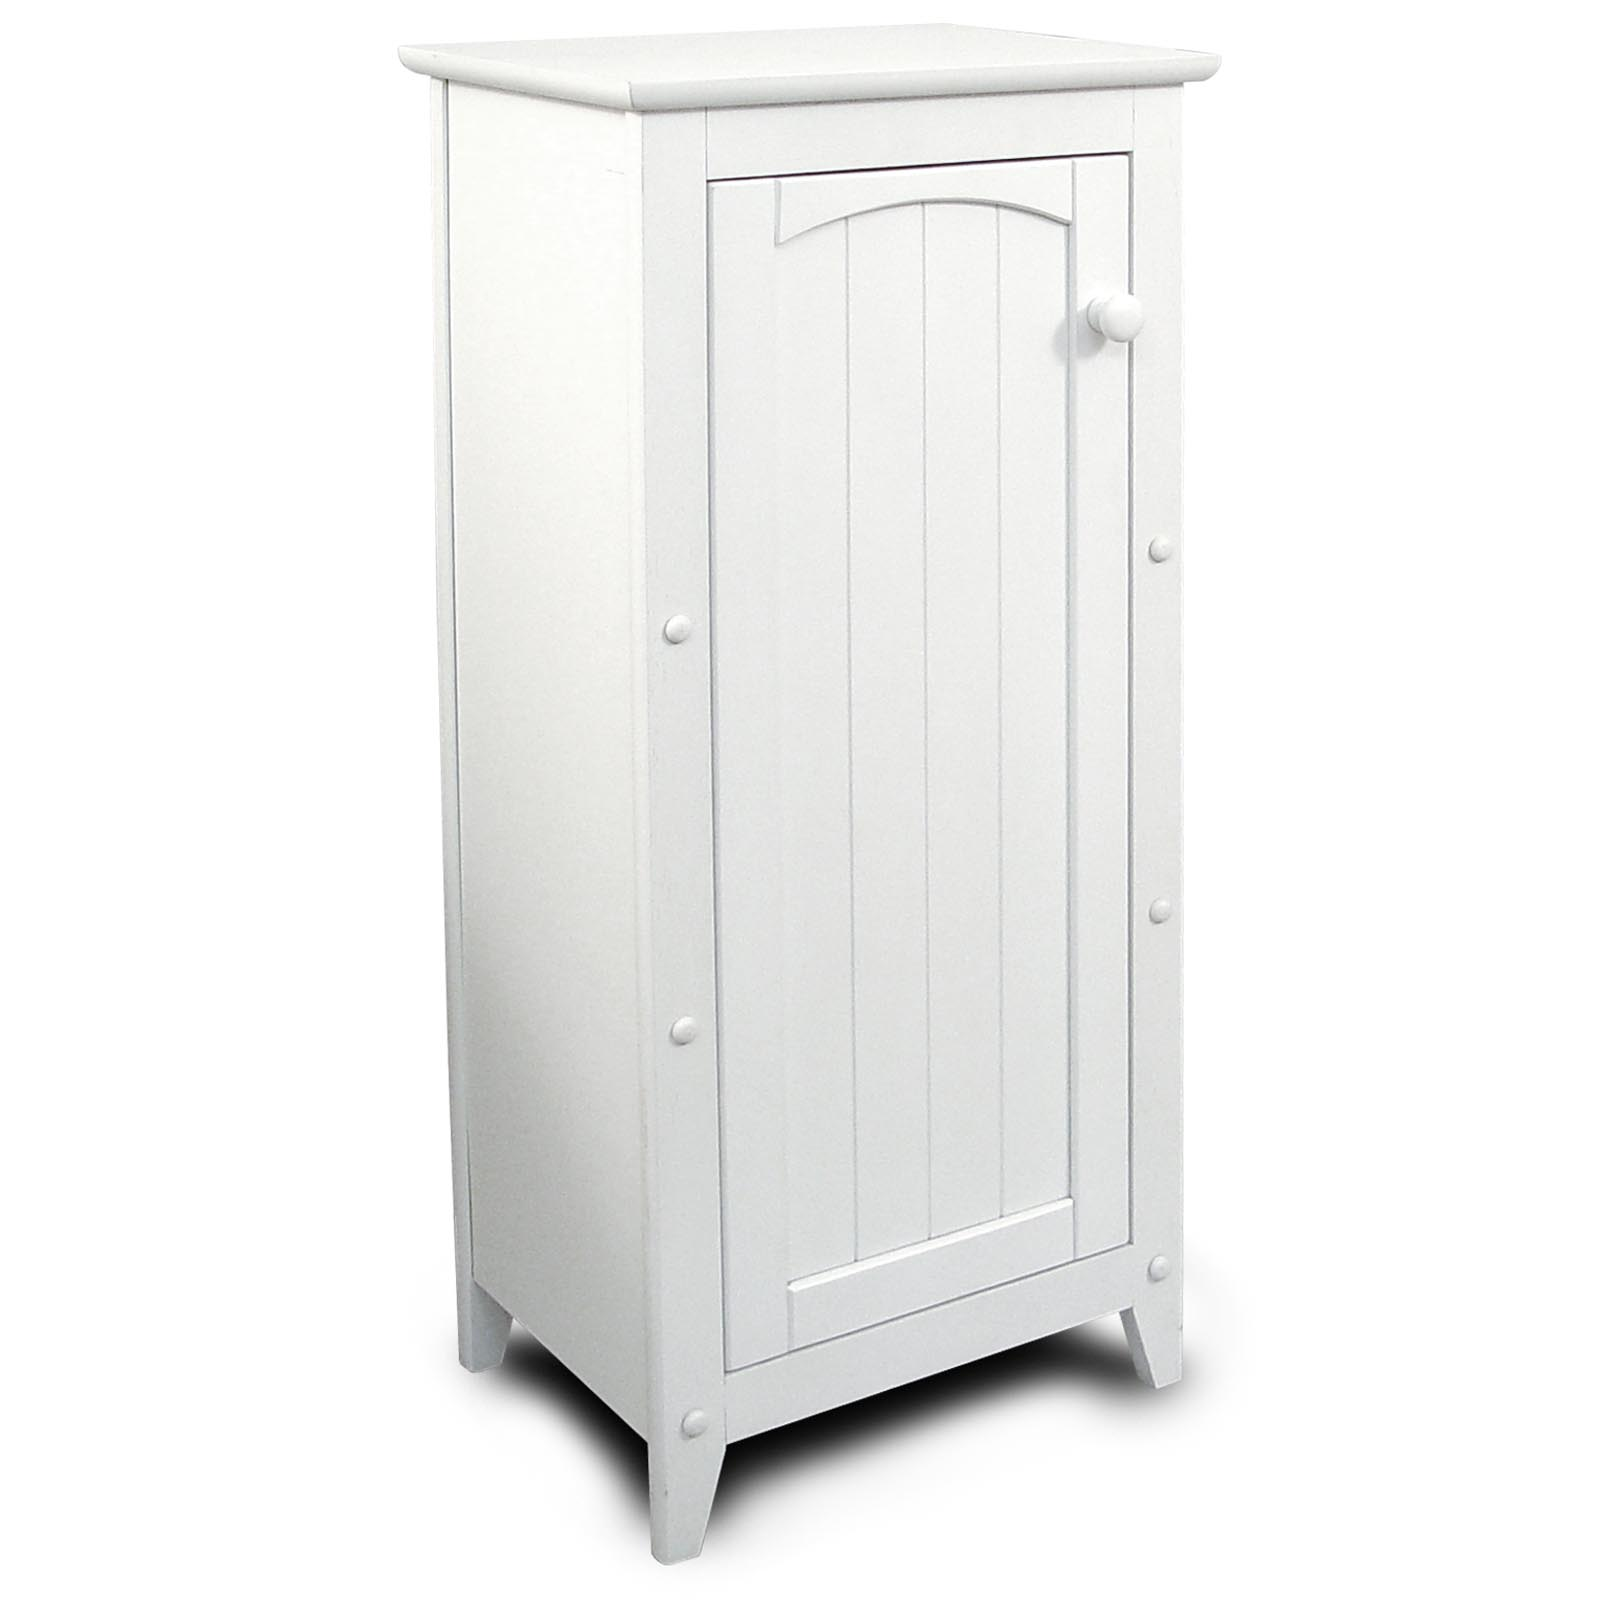 Catskill white all purpose kitchen storage cabinet for Kitchen cabinets storage